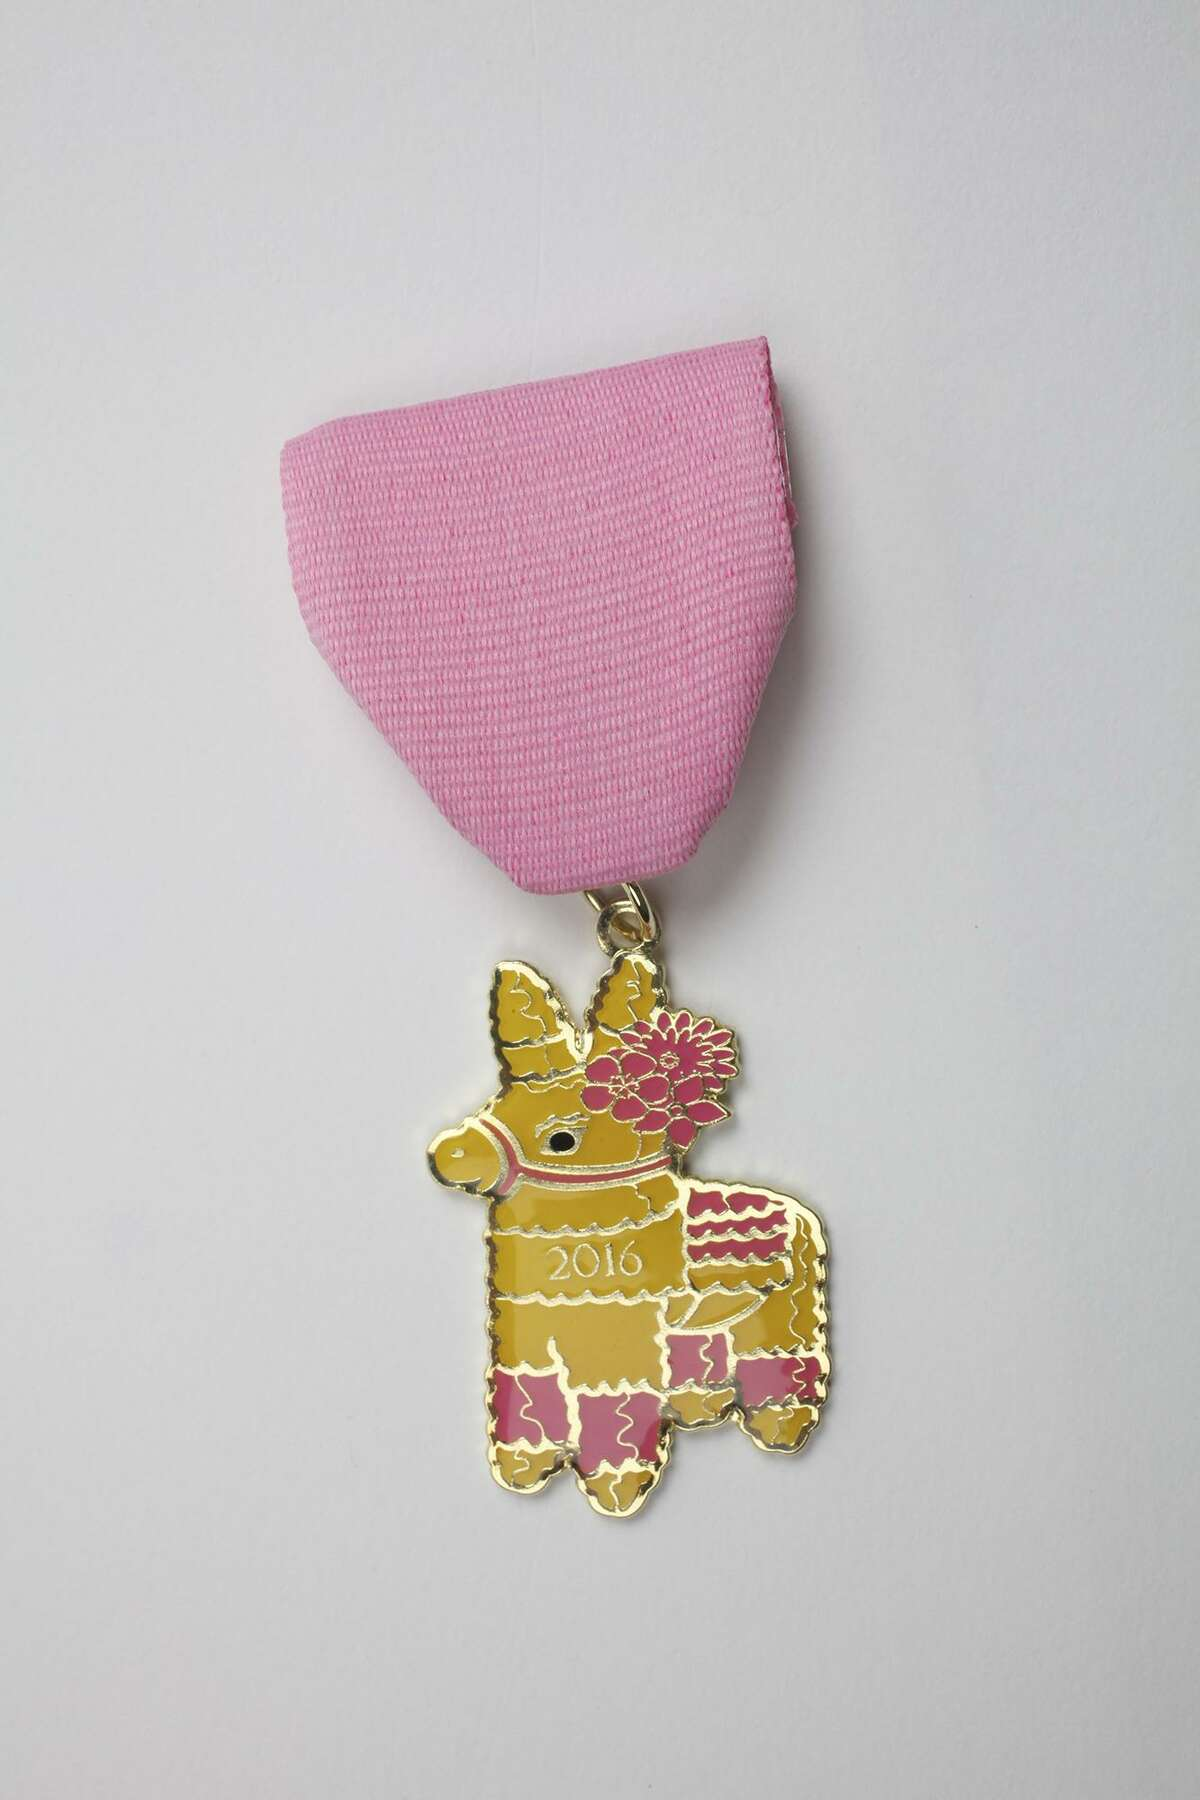 Small business. Winner: Bless Your Heart Giftique medal, no longer available